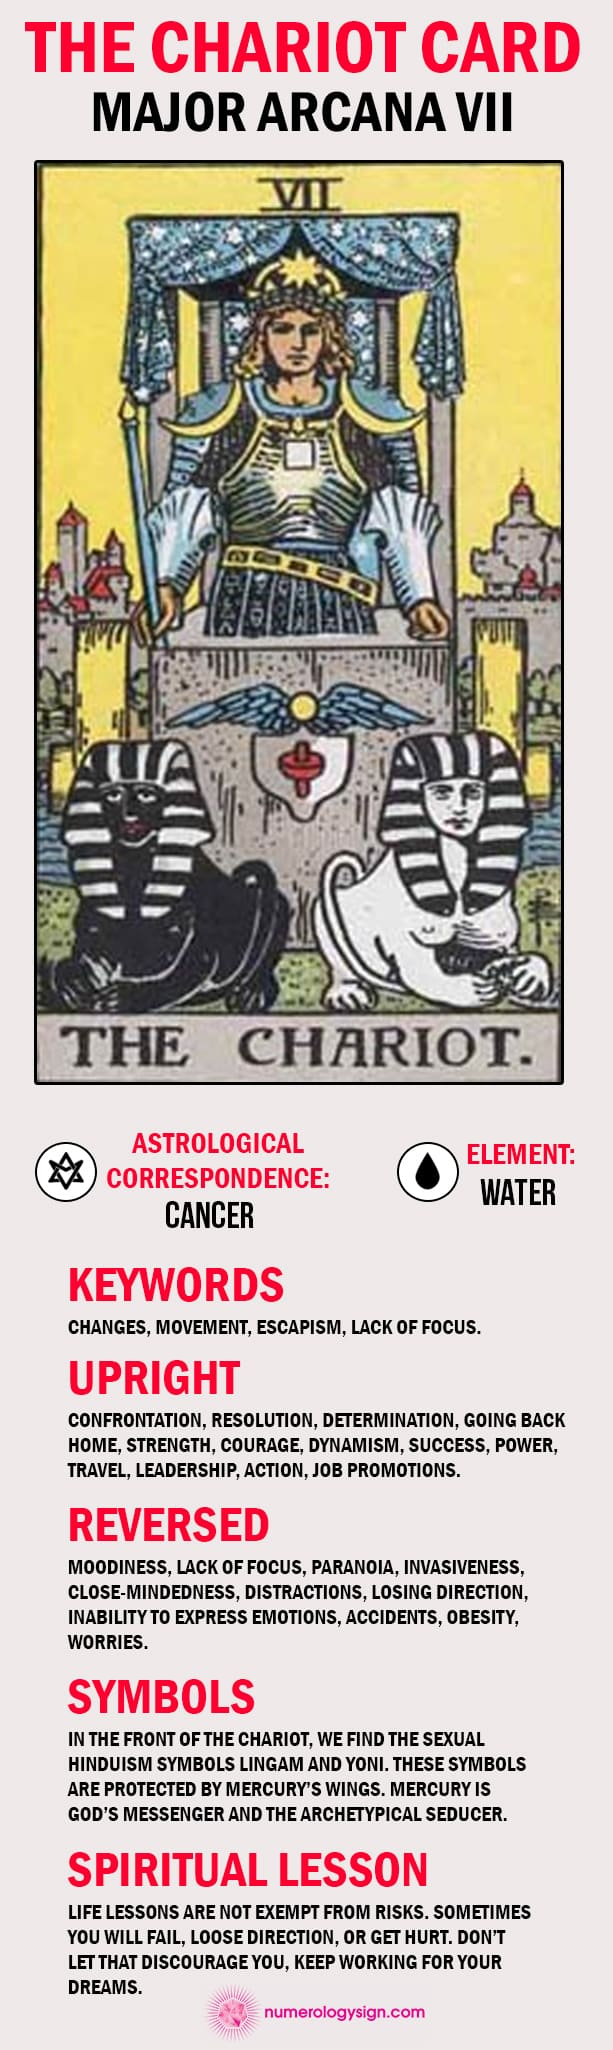 The Chariot Tarot Card Meaning Upright and Reversed